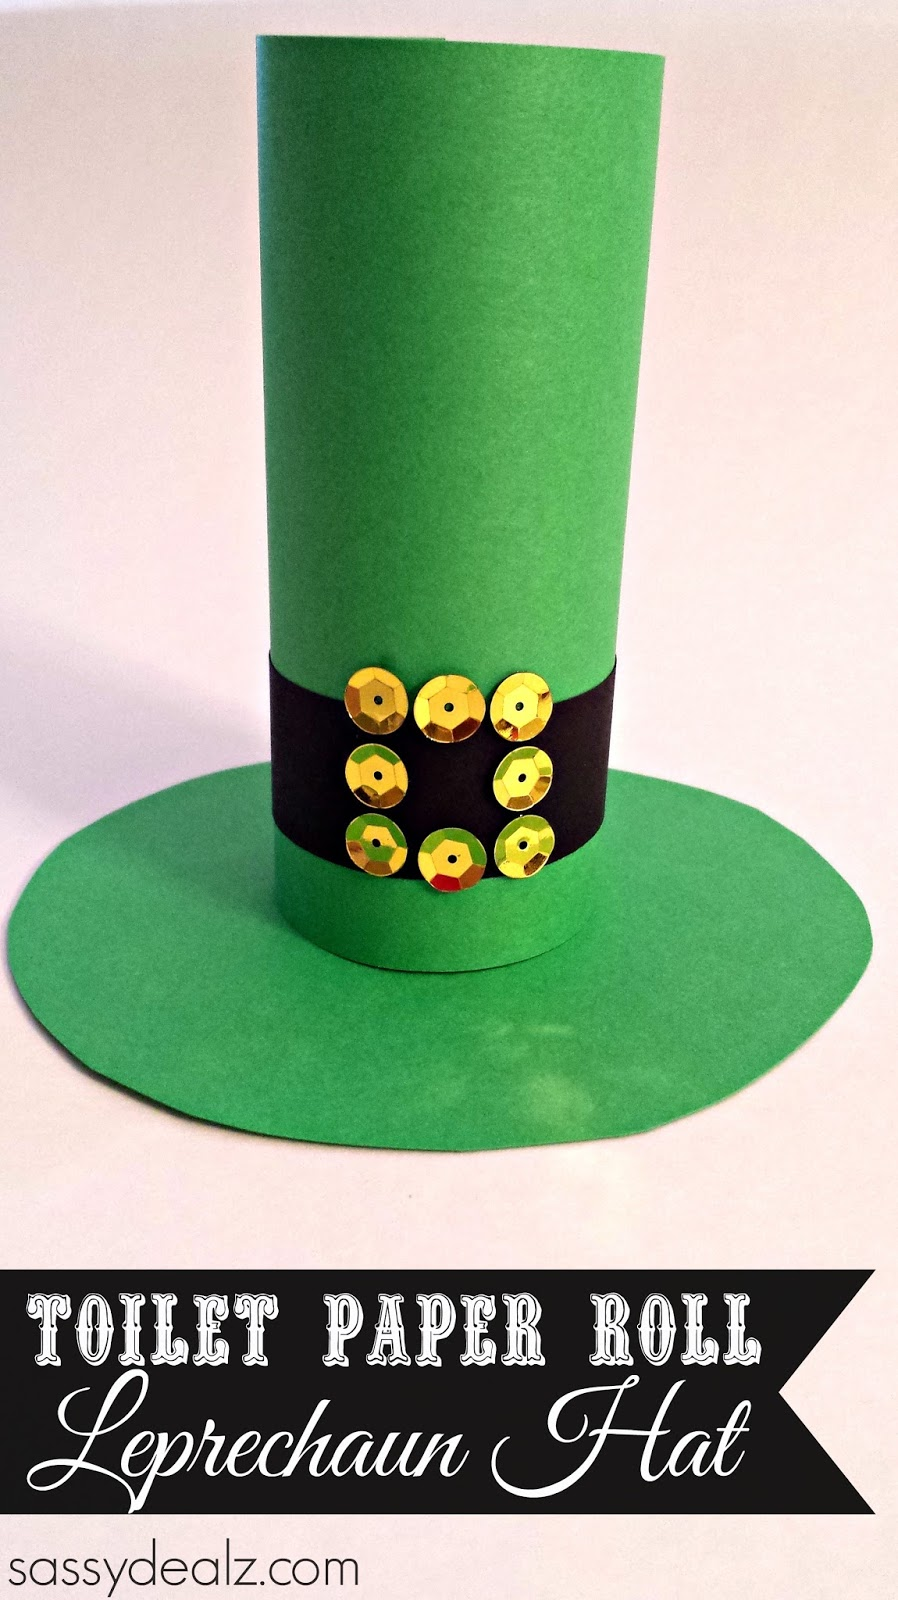 http://www.sassydealz.com/2014/02/leprechaun-hat-toilet-paper-roll-craft-st-patricks-day.html